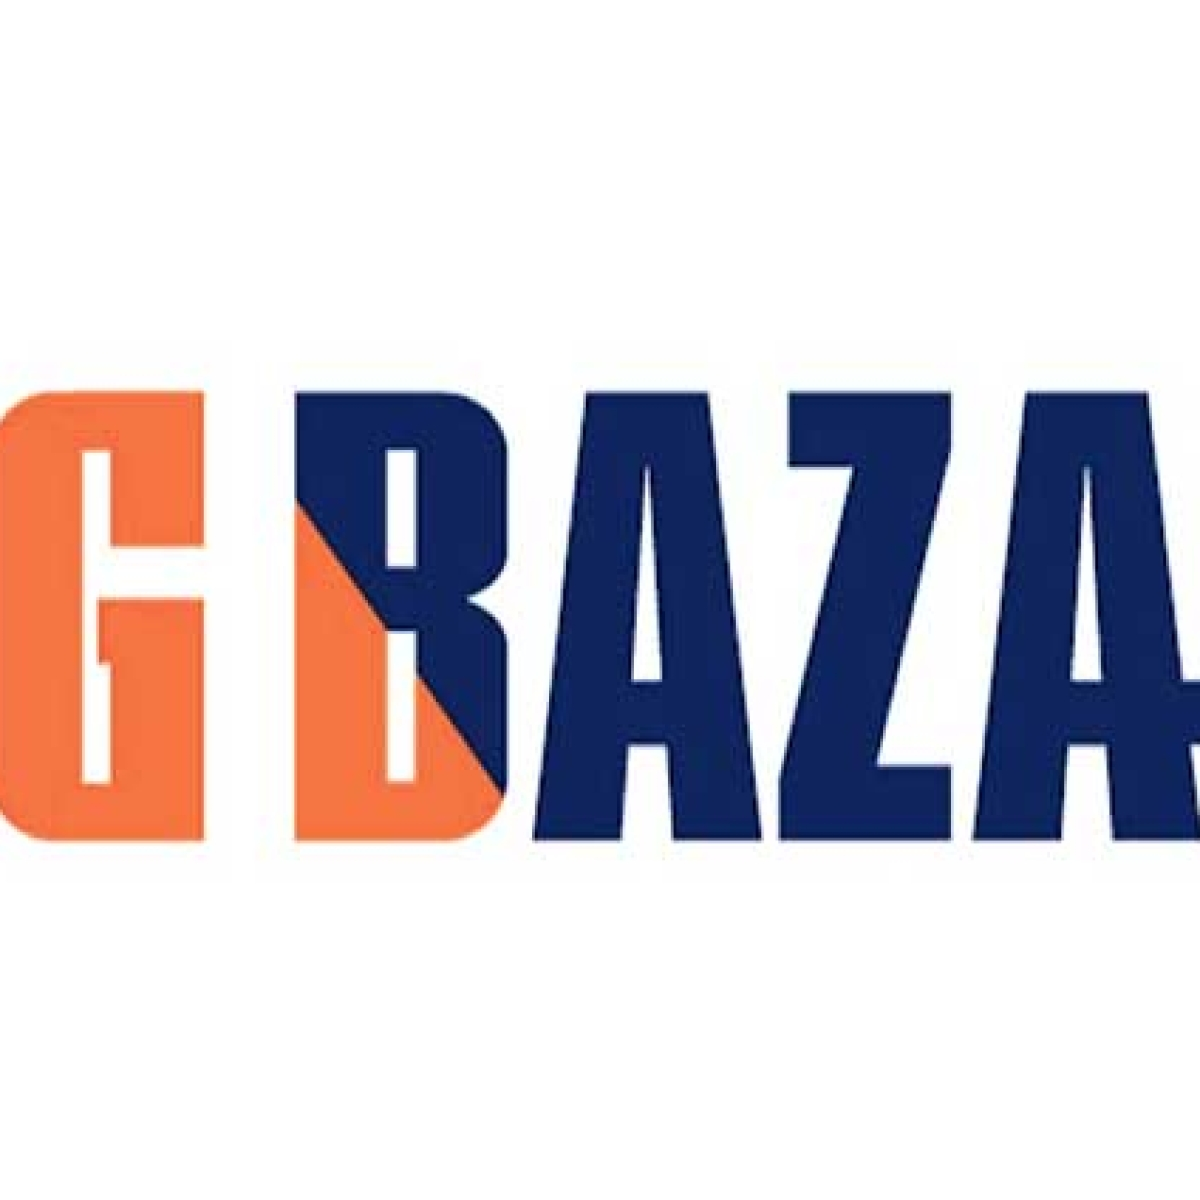 Big Bazaar's '6 Days Mahabachat' from today